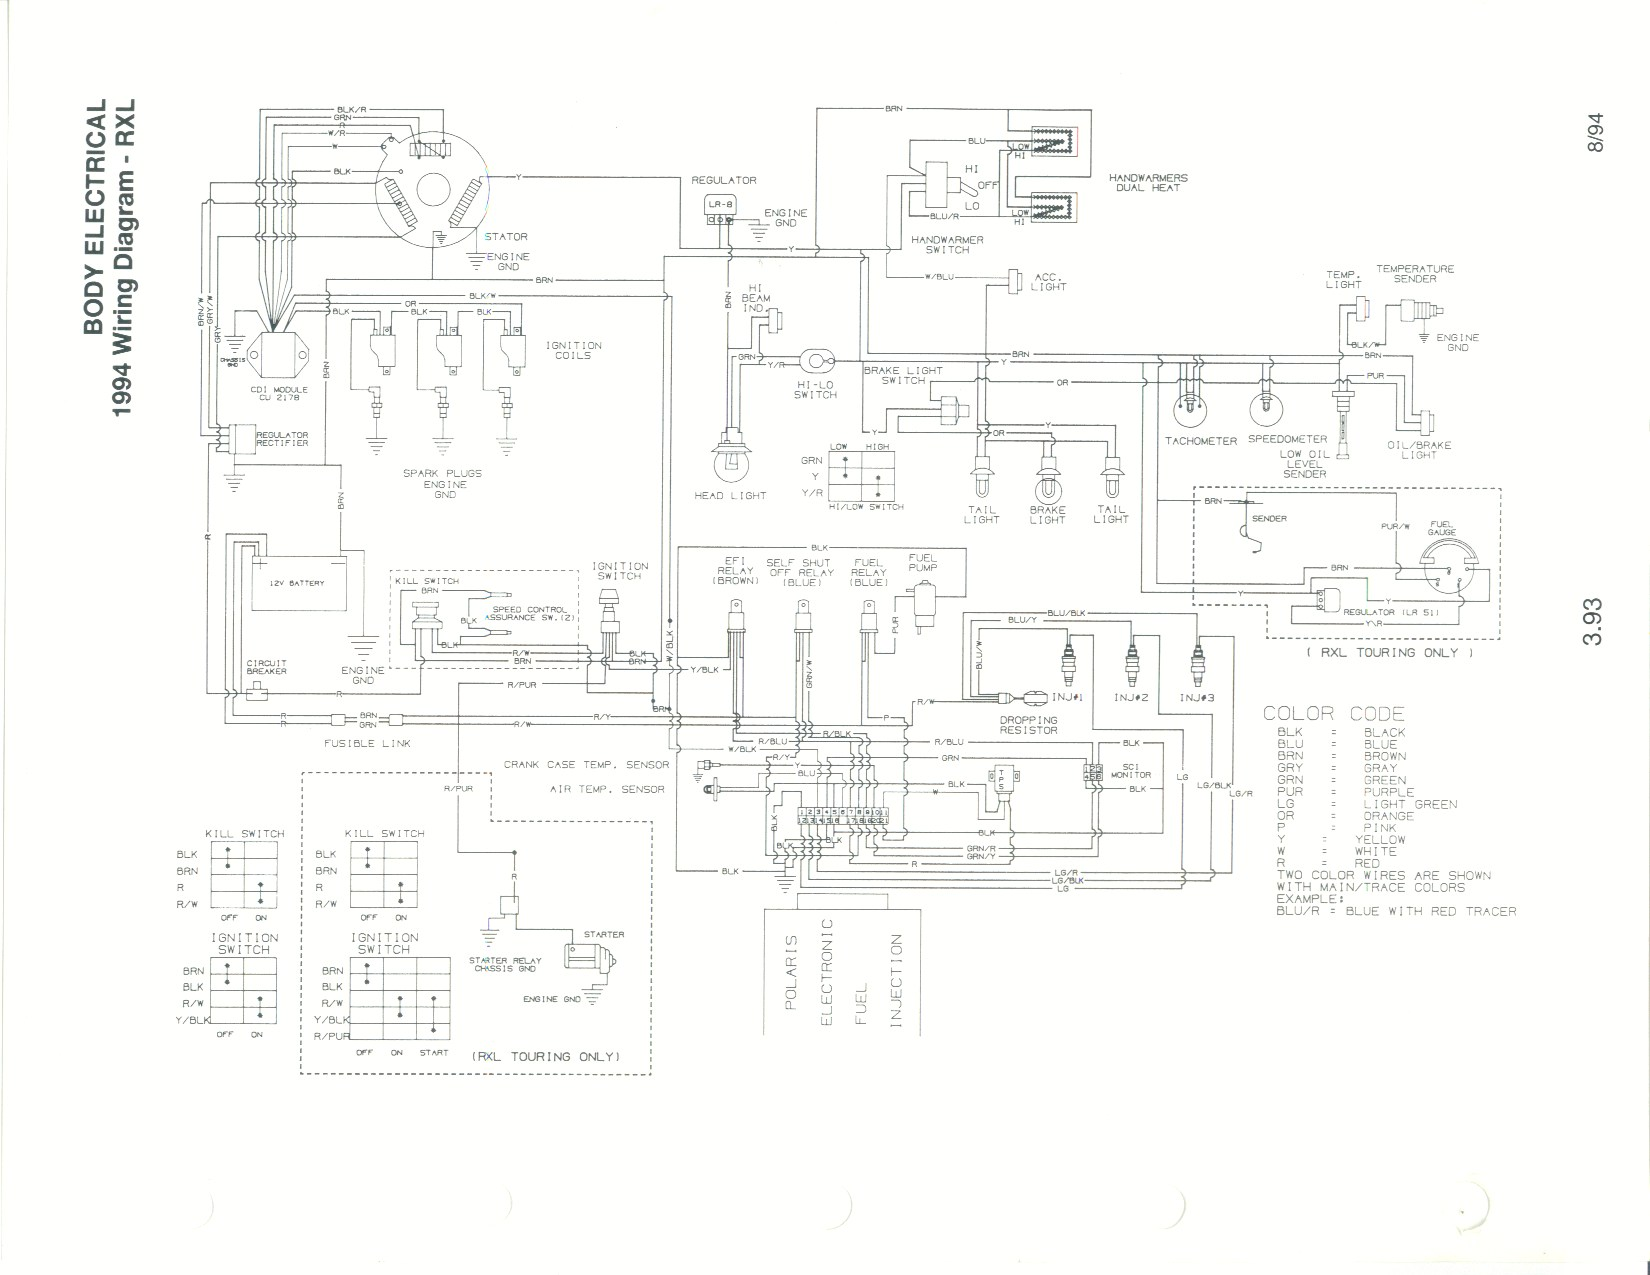 Polaris 650 Wiring Diagram : 26 Wiring Diagram Images